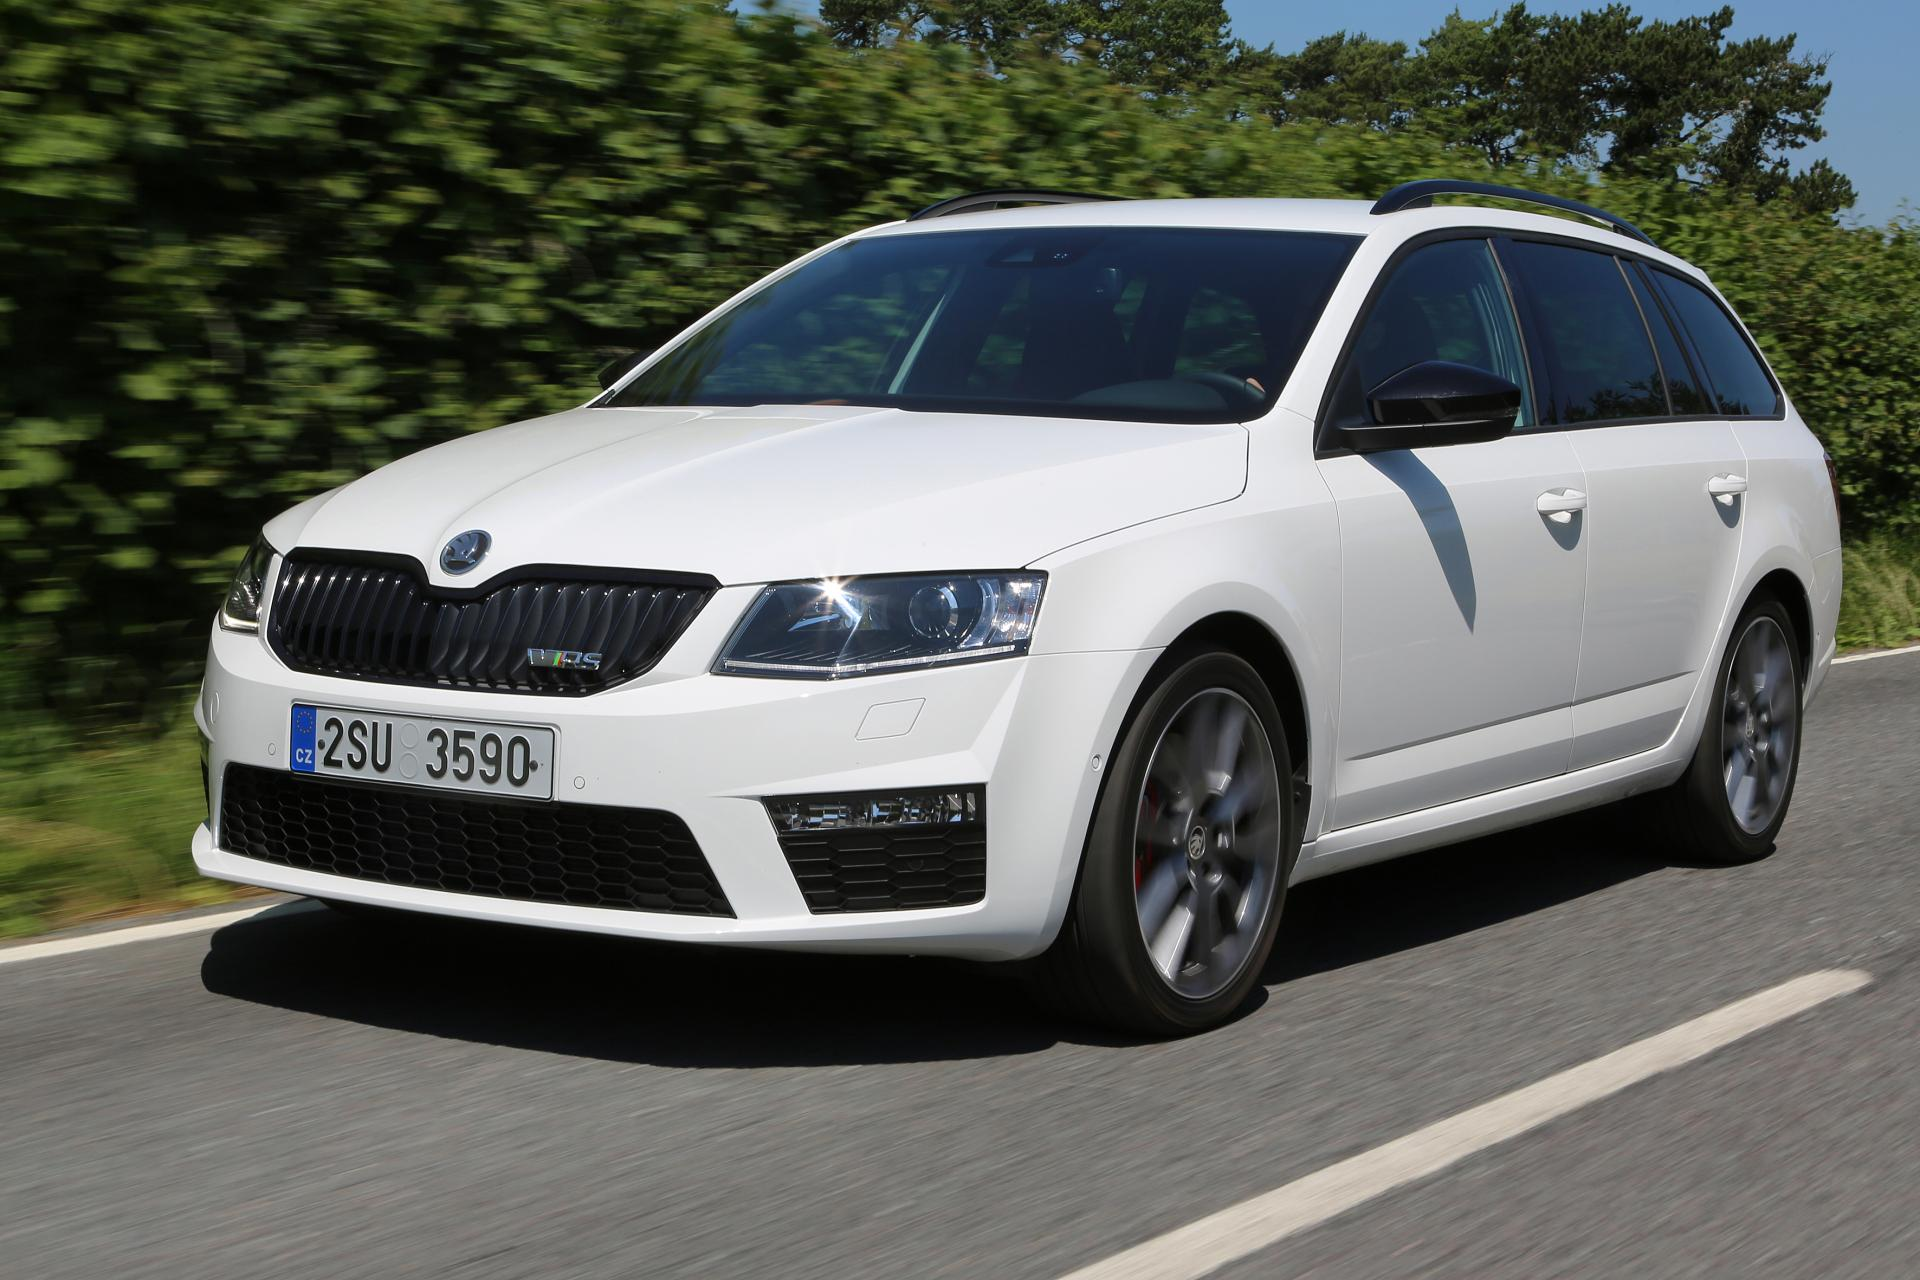 2014 skoda octavia combi rs news and information. Black Bedroom Furniture Sets. Home Design Ideas